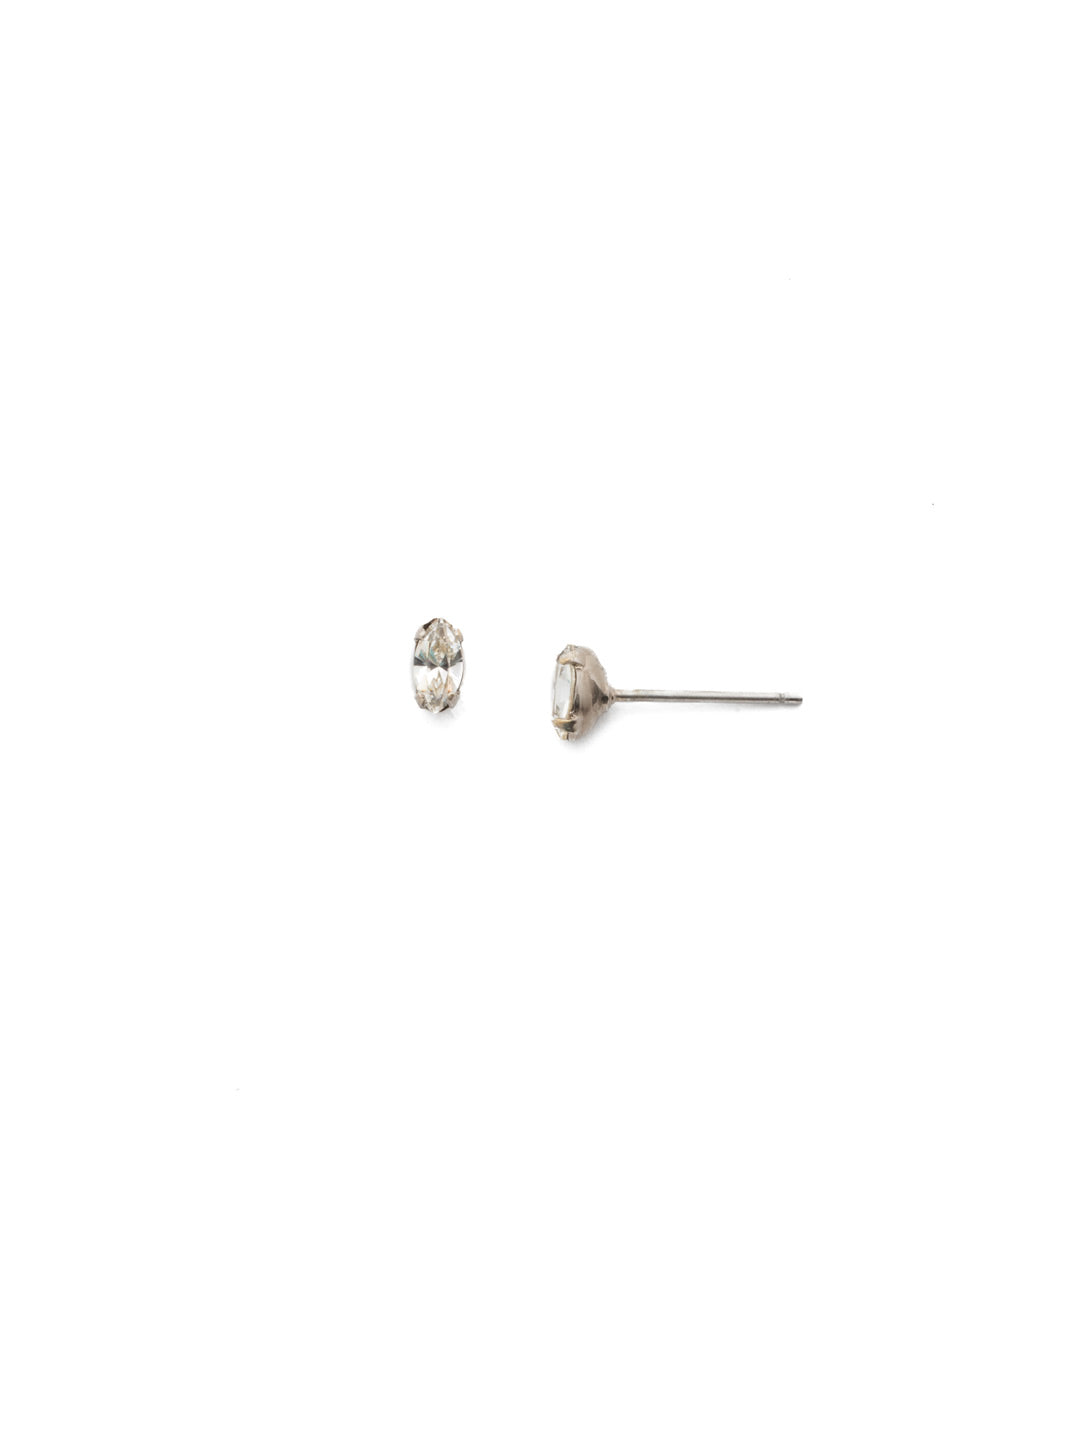 Adelle Stud Earrings - EEP26ASCRE